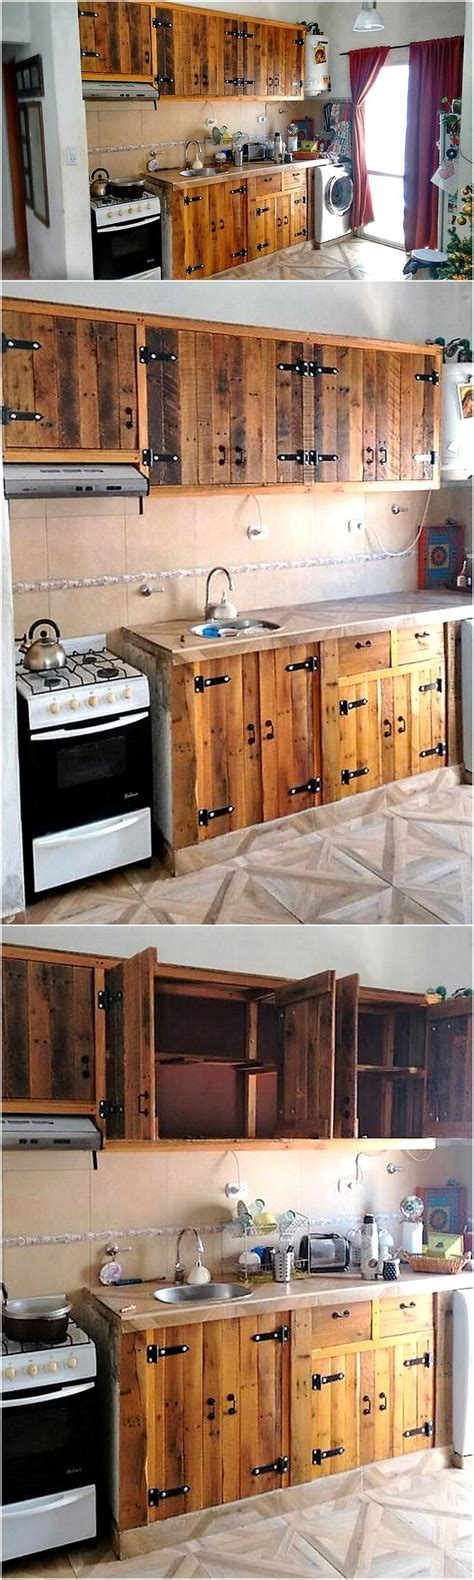 Made Kitchen Cabinets by Choose One Idea For Your Next Diy Pallet Projects Wood